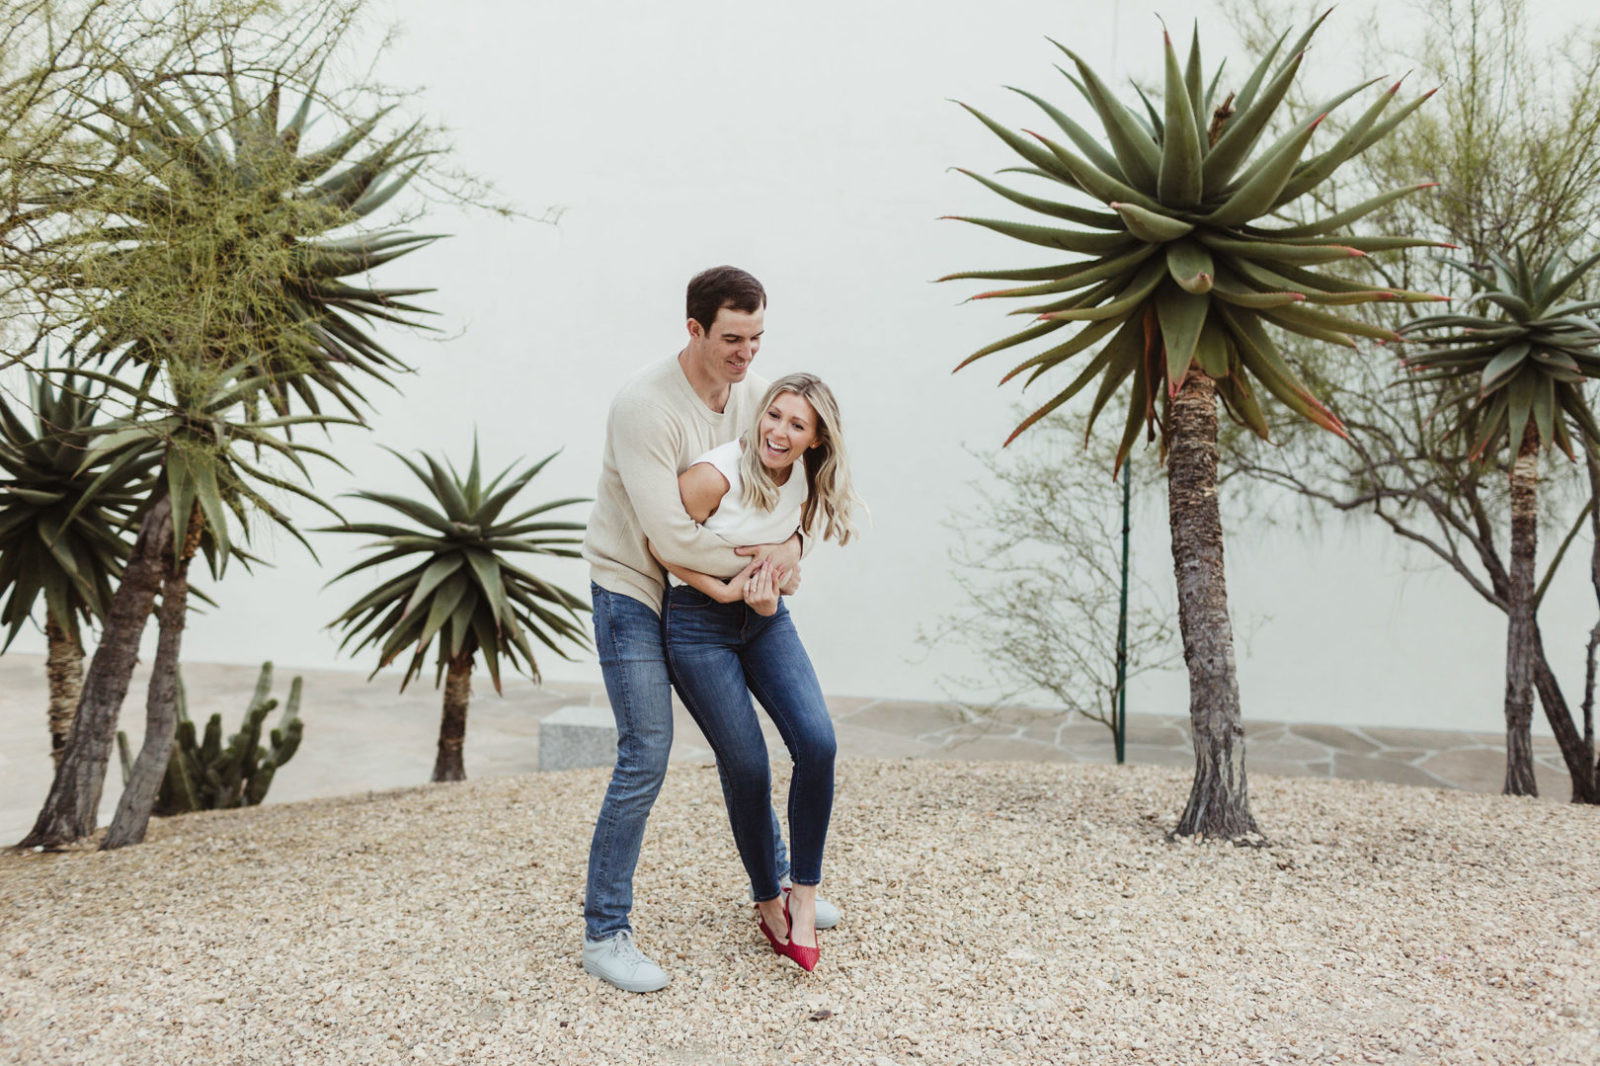 Noguchi Garden and Crystal Cove engagement session